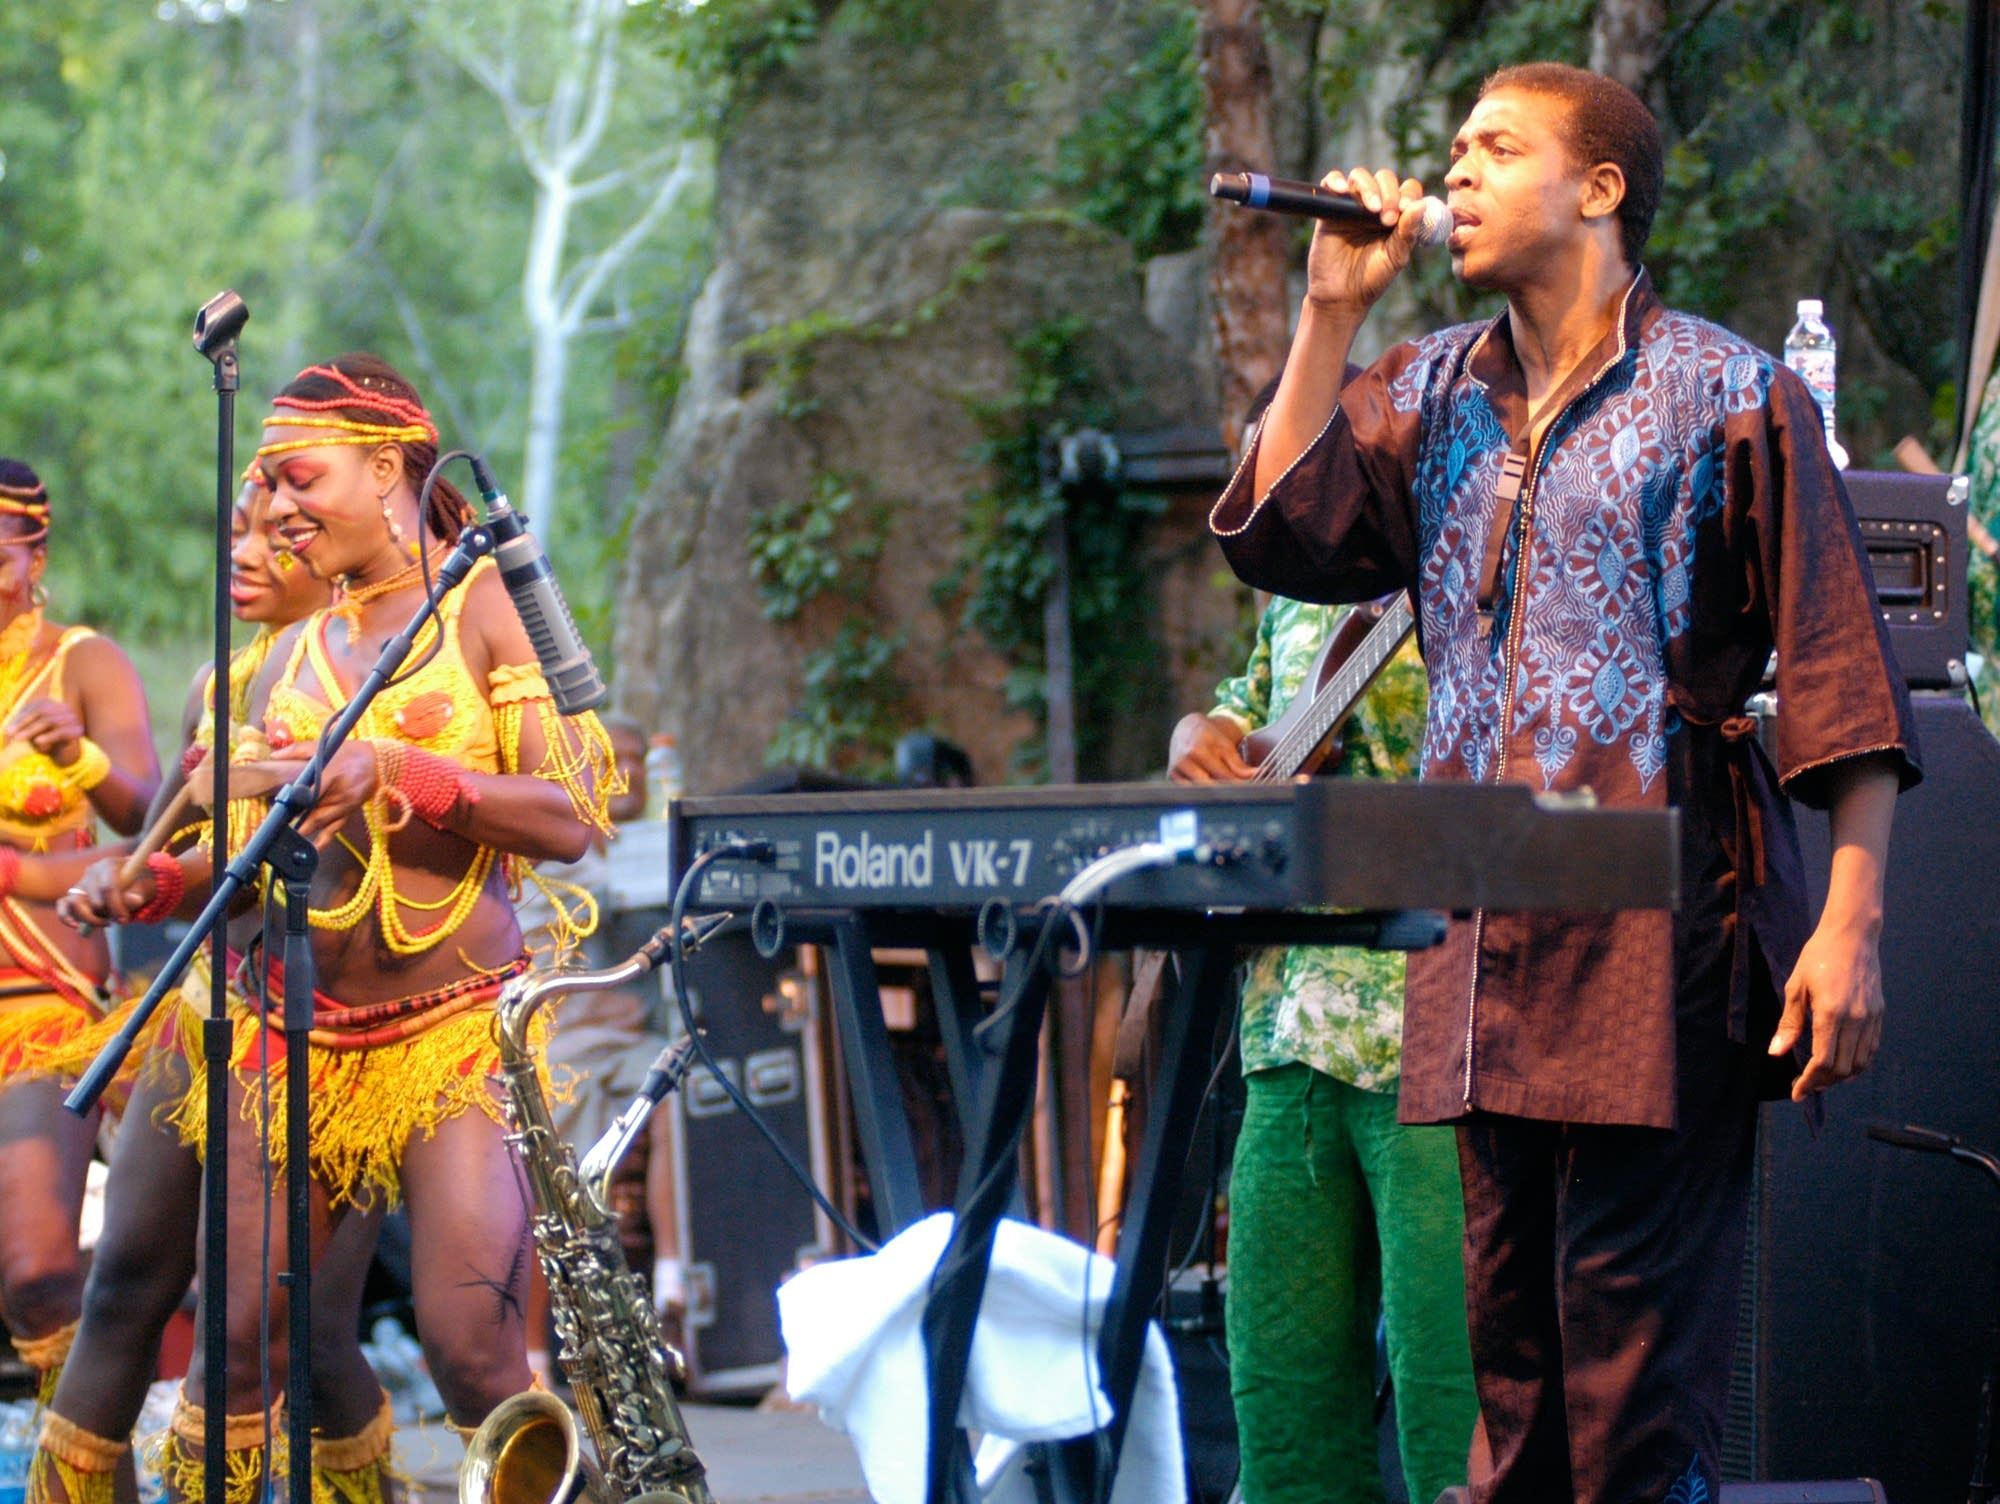 Femi Kuti at the Minnesota Zoo, 2007.